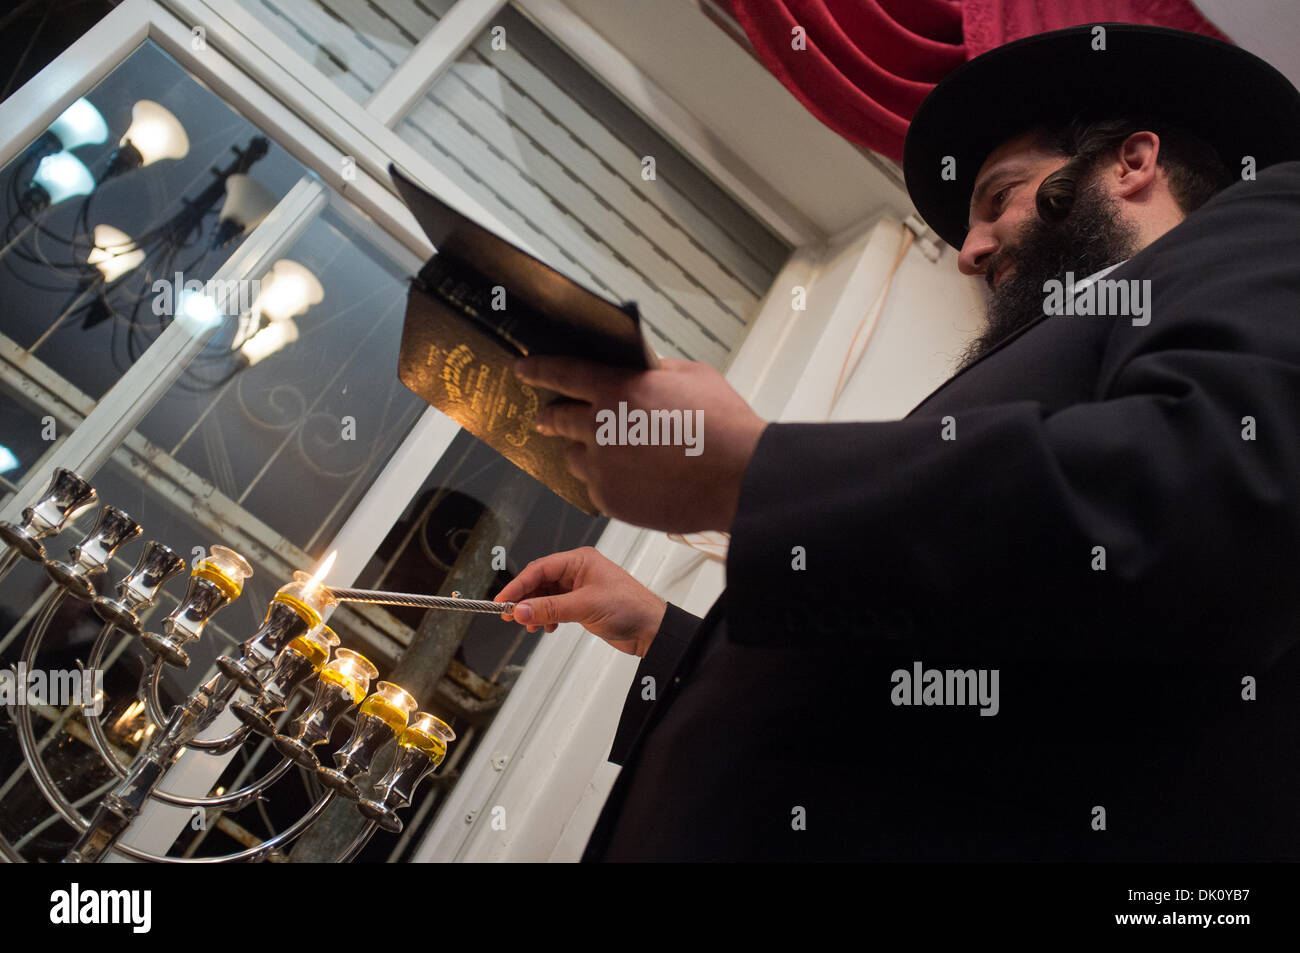 Sanhedria, Jerusalem, Israel. 1st Dec 2013. Yaacov Yeruslavski, a Breslov Hassidic, ultra-Orthodox, Jewish man, lights five candles on the eight-branched menorah with his family in their home in the Orthodox neighborhood of Sanhedria, celebrating the fifth night of Hanukkah. Jerusalem, Israel. 1-Dec-2013.   The Breslov Hassidic, ultra-Orthodox, Yeruslavski family, light five candles on the eight-branched menorah celebrating the fifth night of Hanukkah, commemorating the oil lamp that miraculously burned for eight days in the destroyed Temple in 164 BCE. Credit:  Nir Alon/Alamy Live News - Stock Image